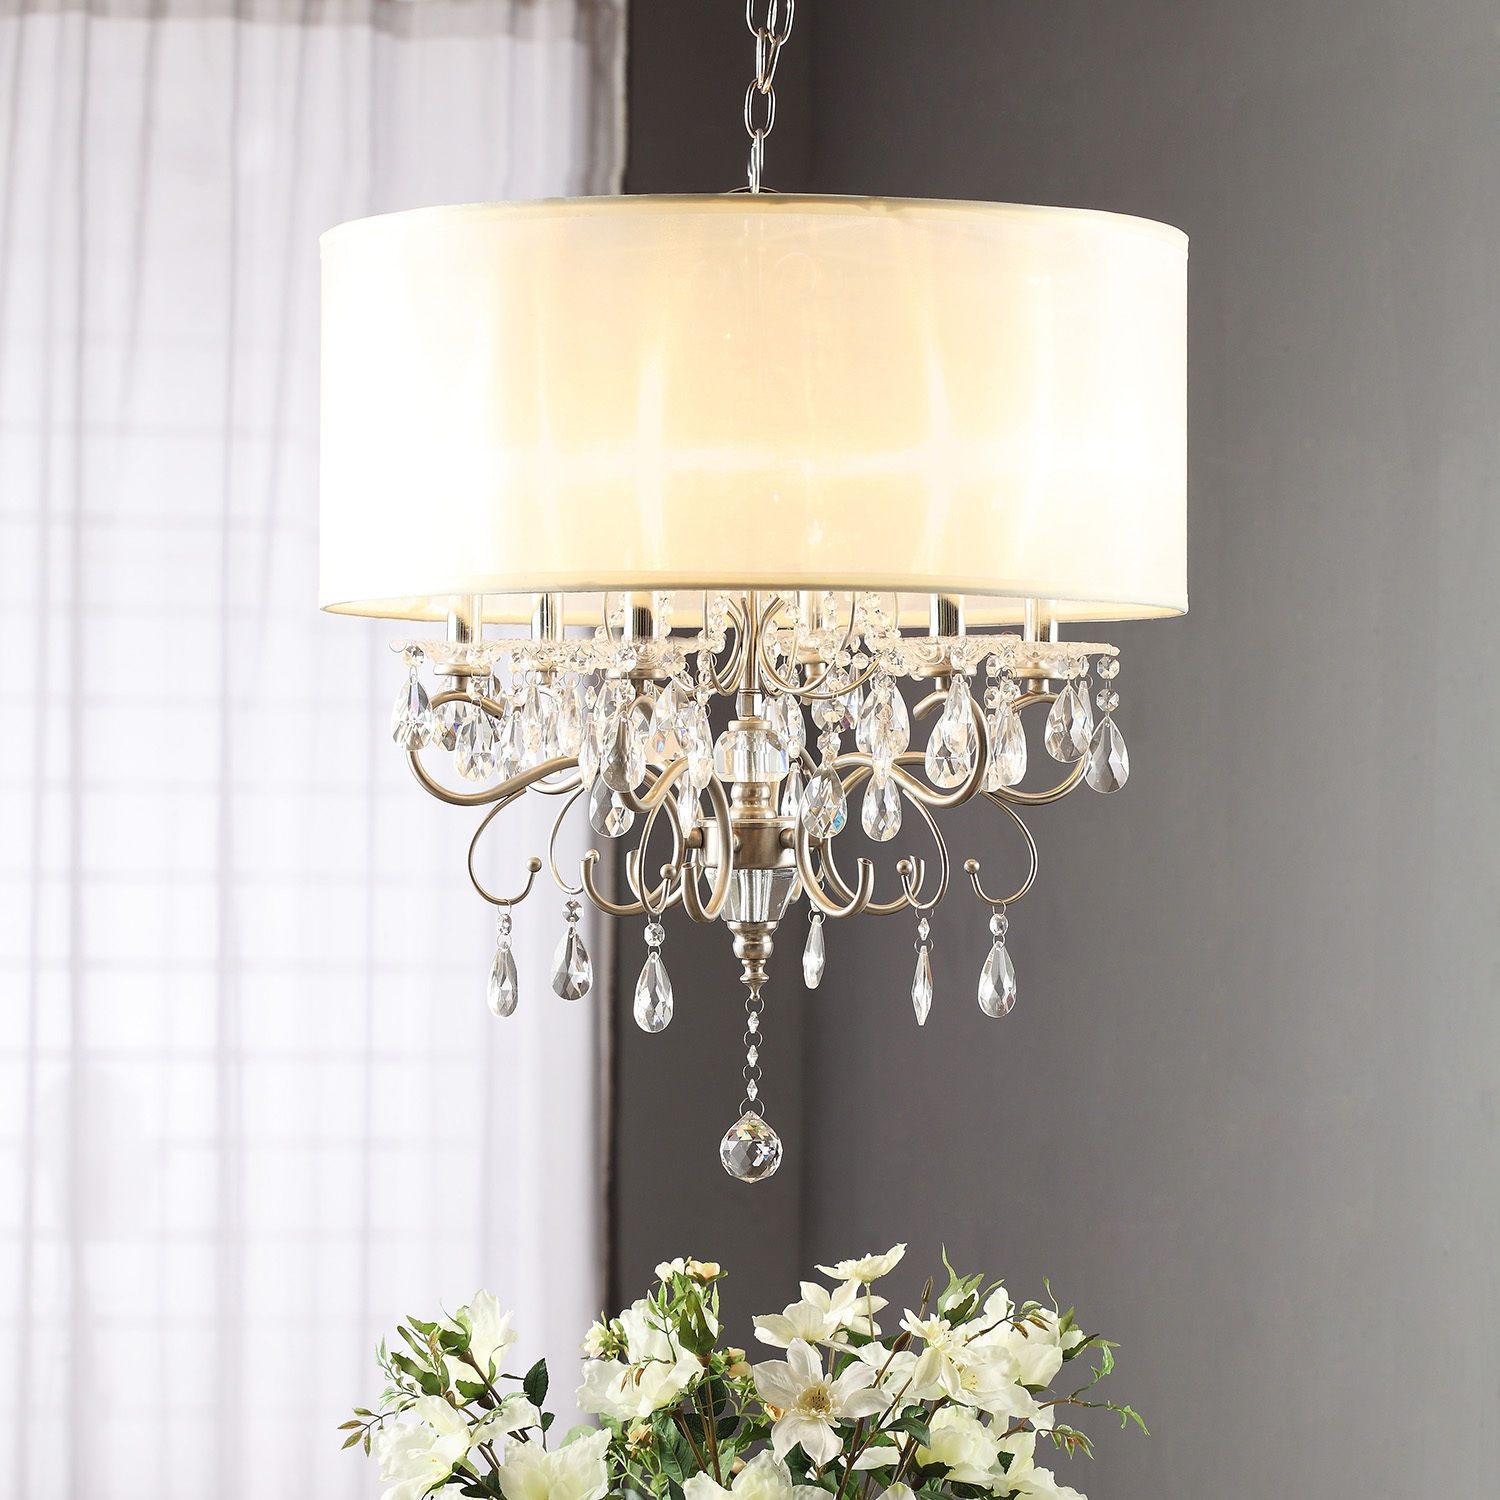 Top 10 Chandeliers Ebay With Regard To Cream Chandelier Lights (Image 14 of 15)